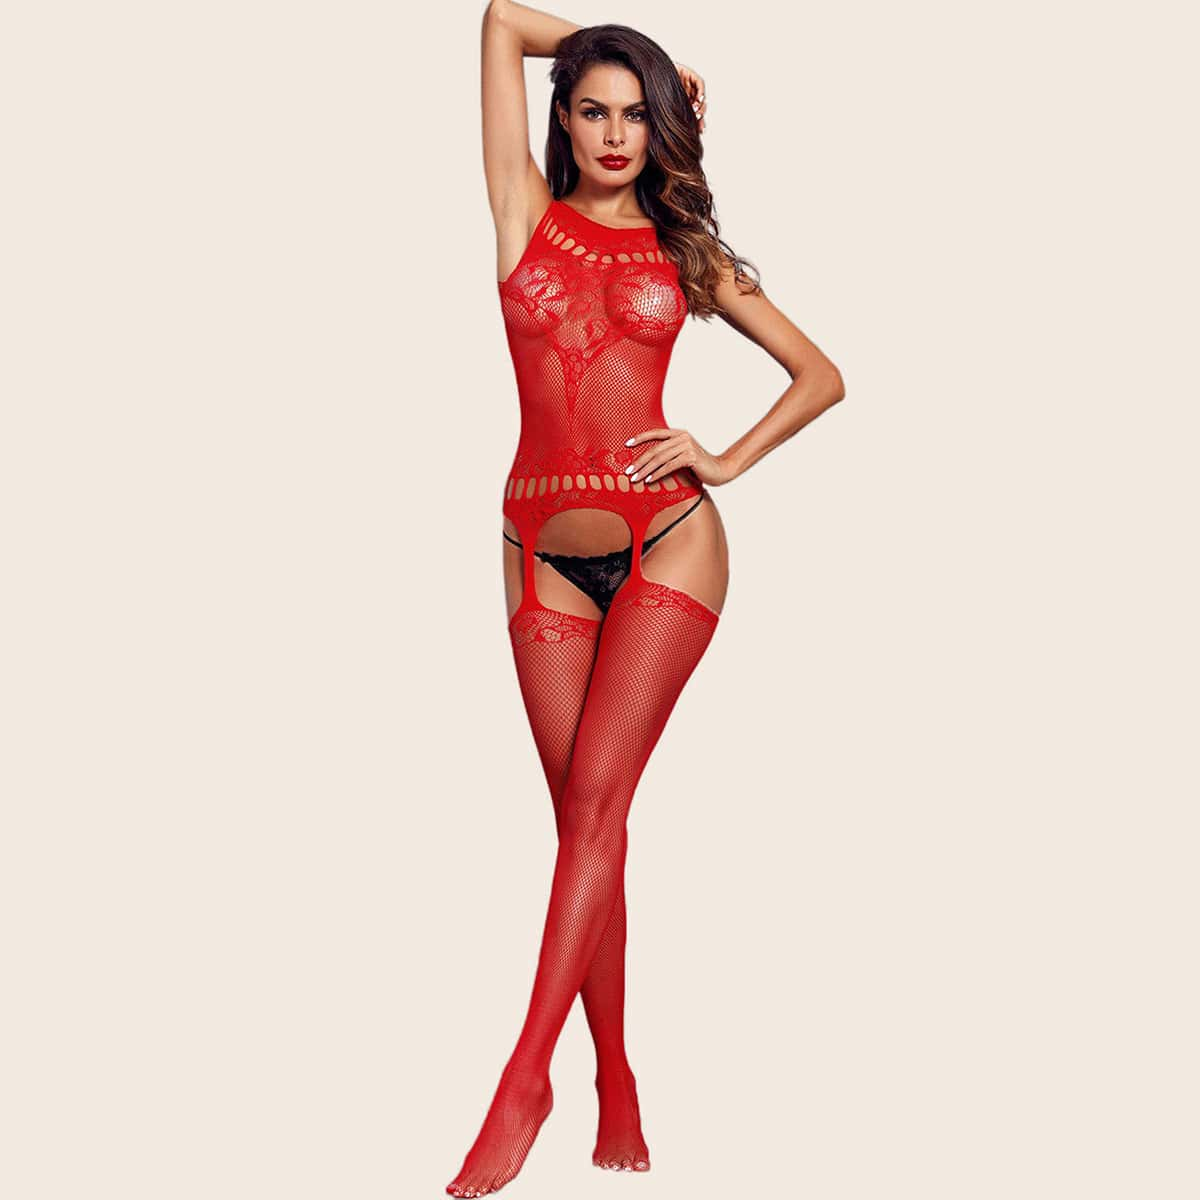 SHEIN / Cut Out Net Crotchless Bodystocking